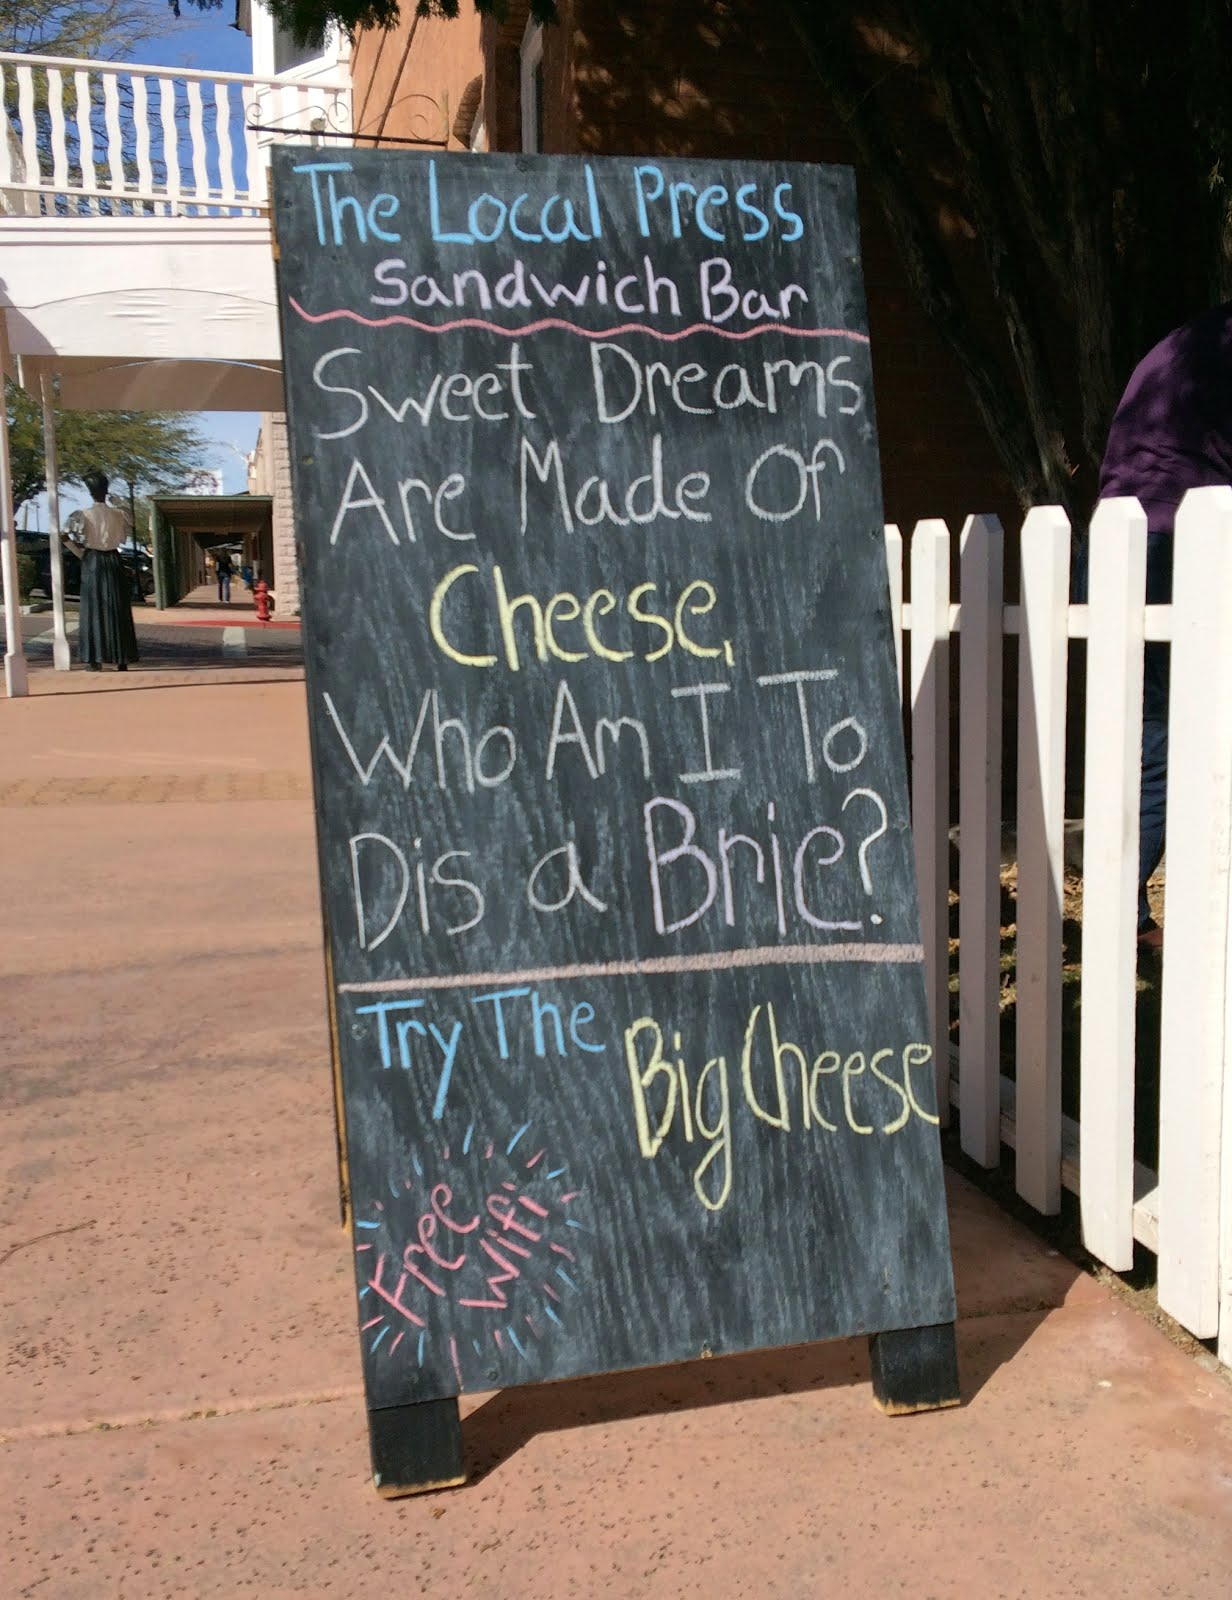 Cheesey Sign is Punny and Funny.